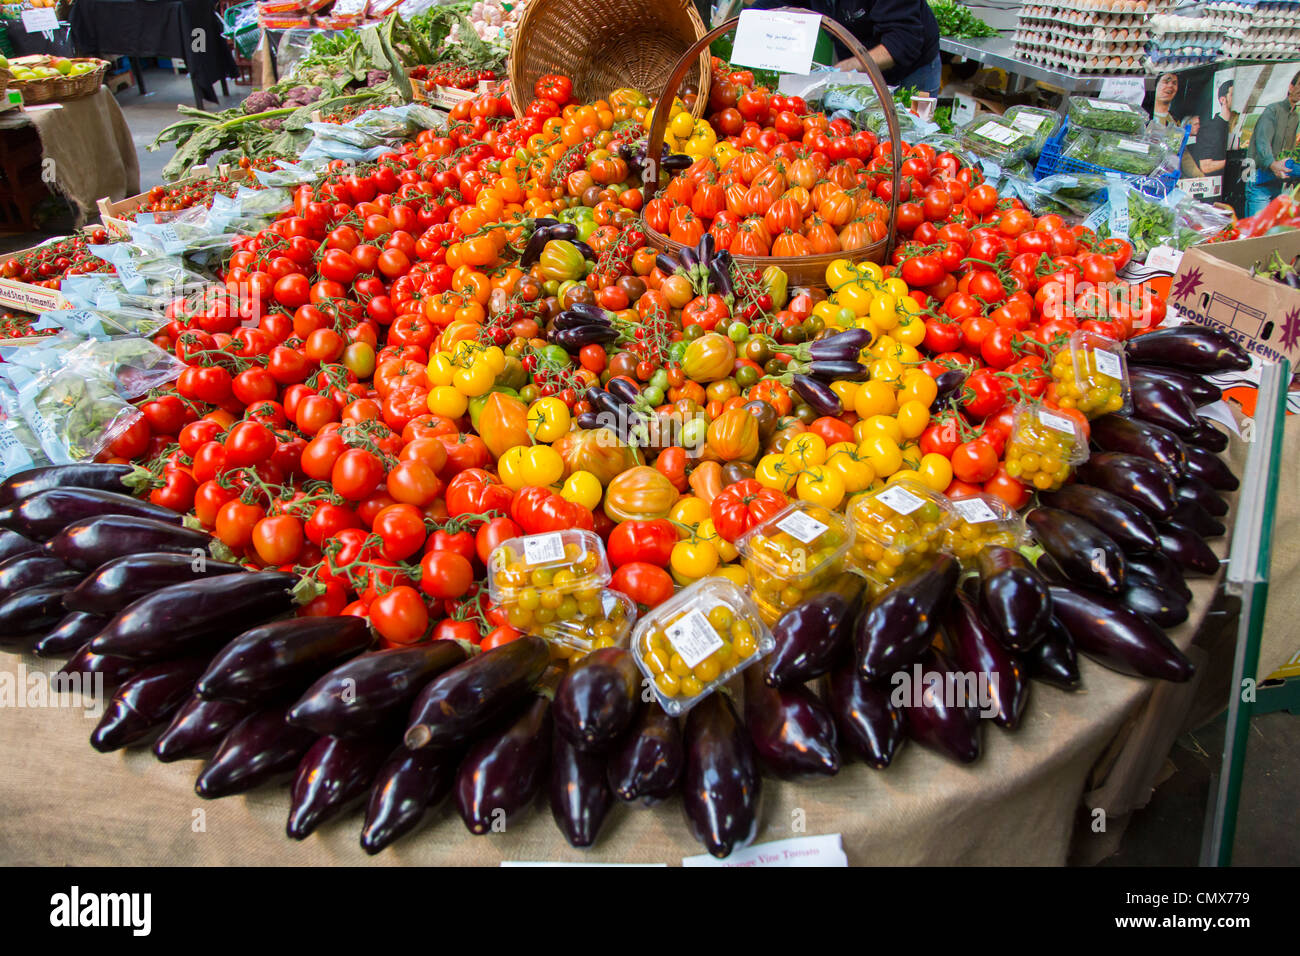 England, London, Fresh fruit and vegetables for sale in Borough Market. - Stock Image